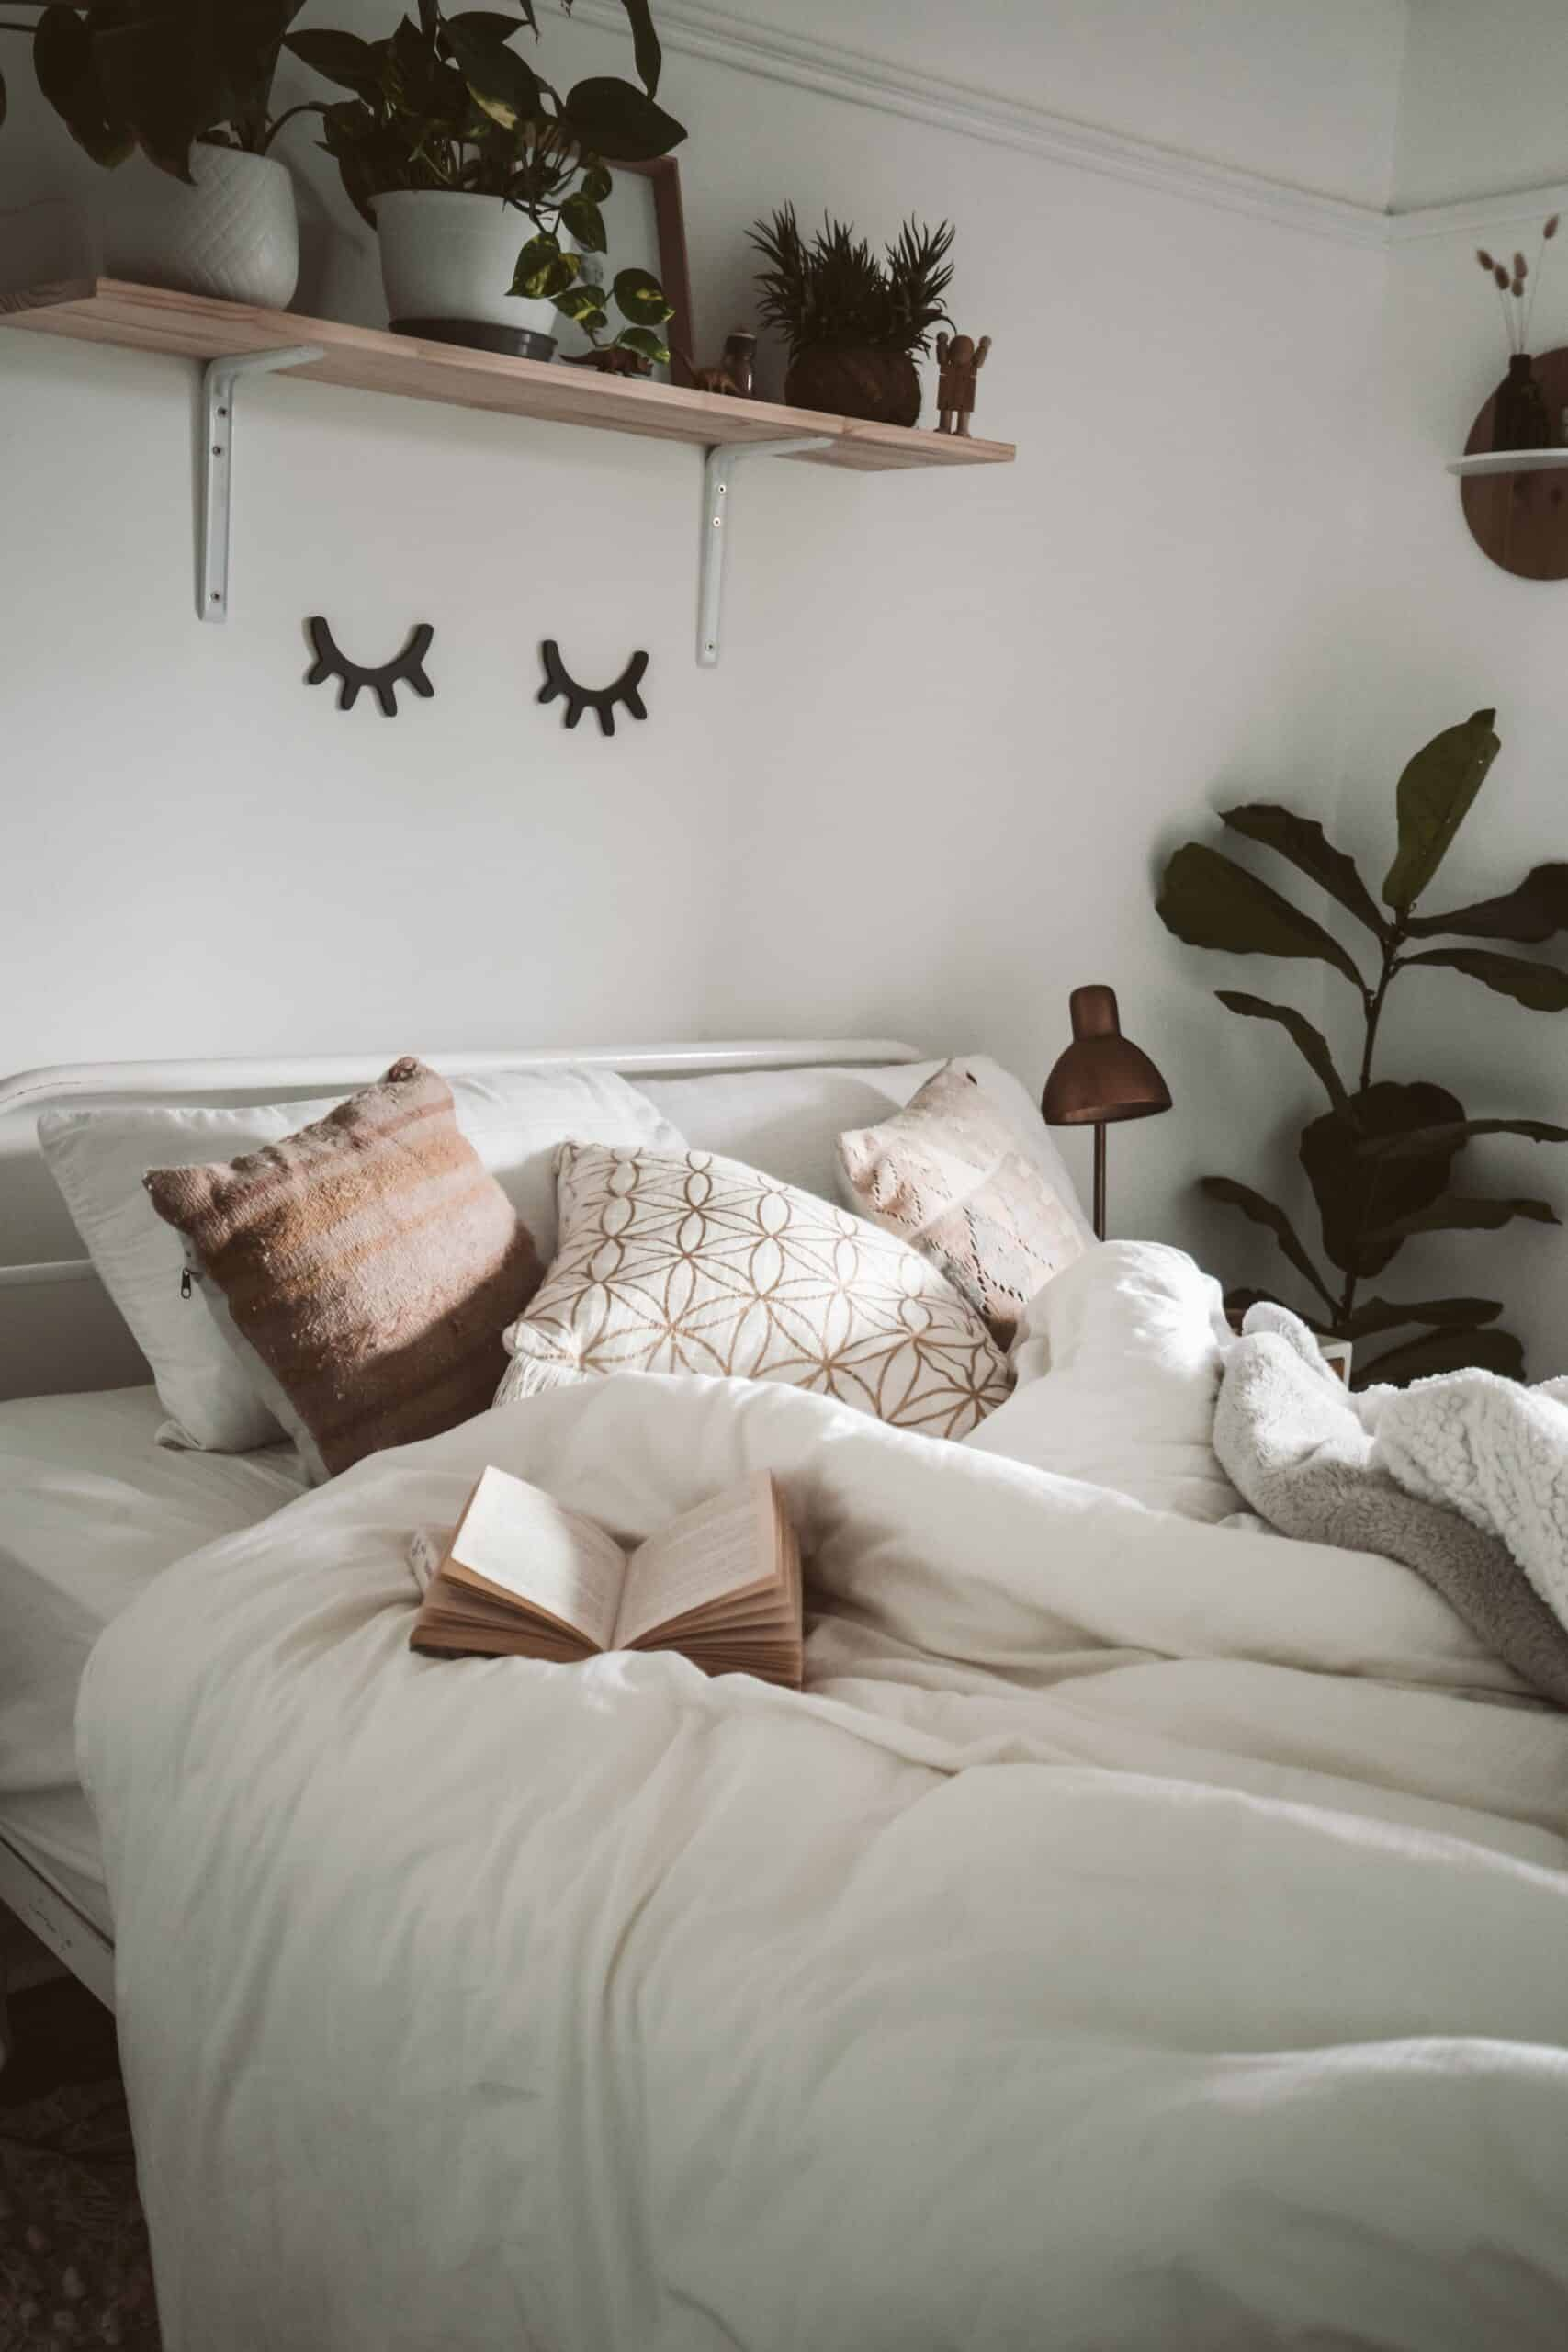 Is Your Home As Comfortable As It Should Be?